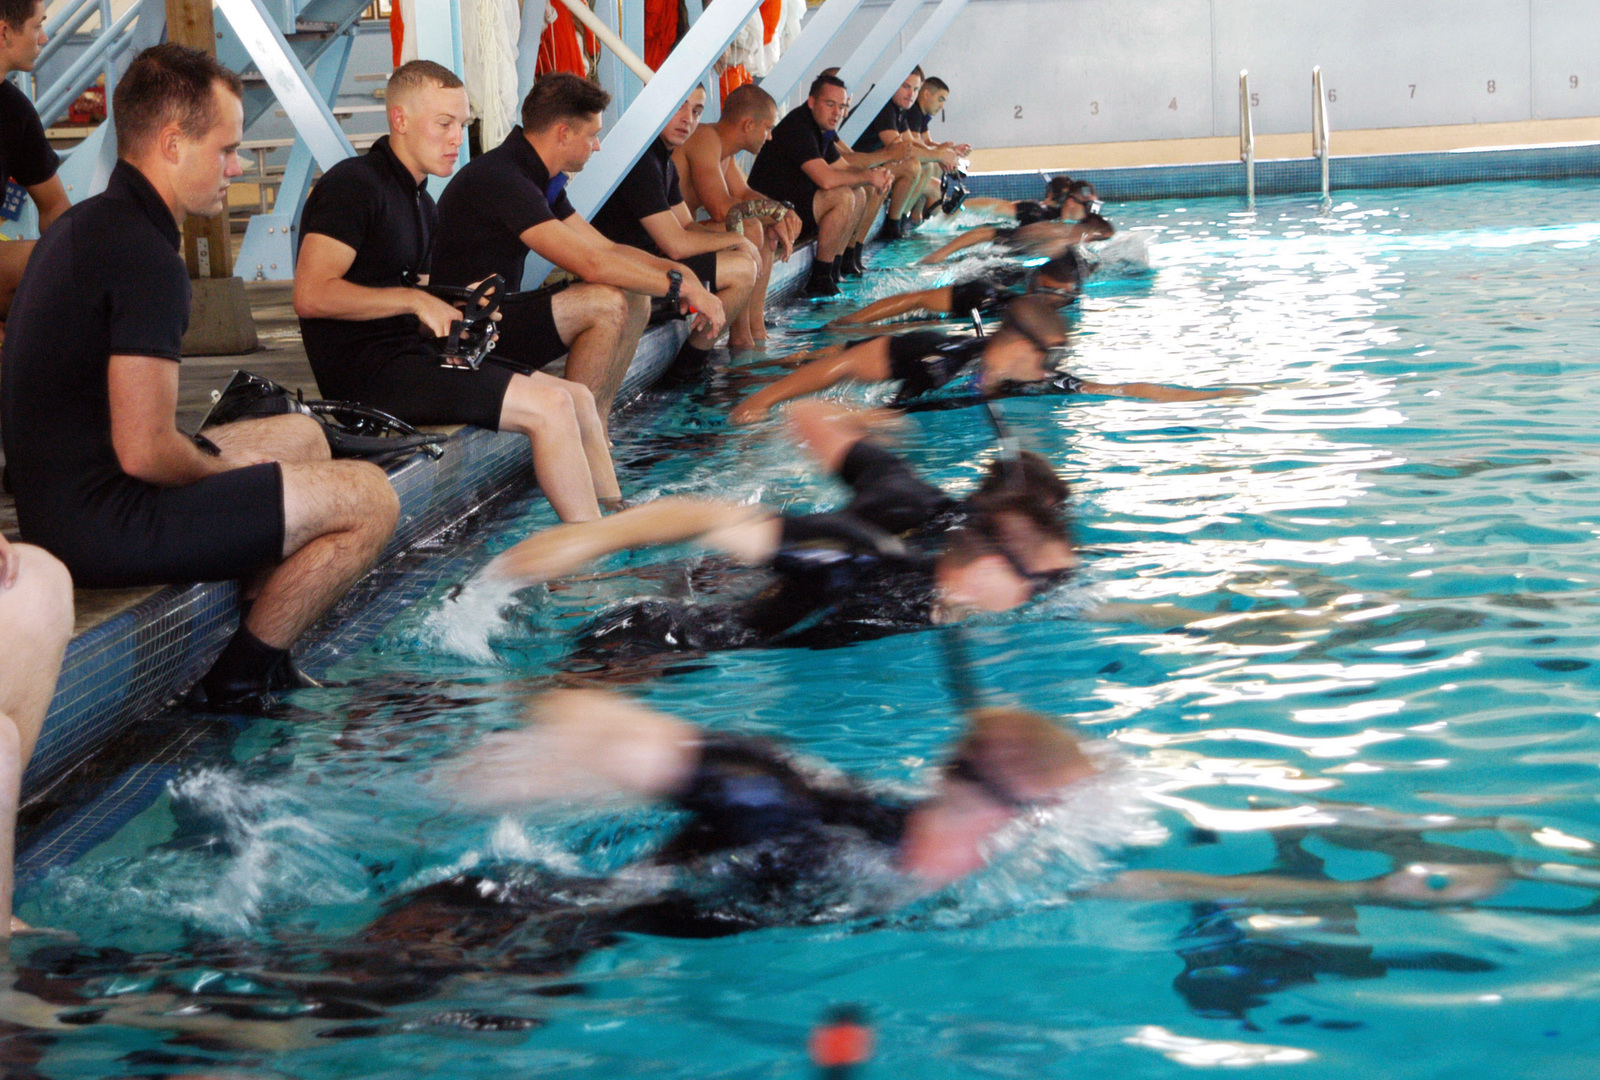 U S  Navy Search and Rescue swimmers from various commands in the